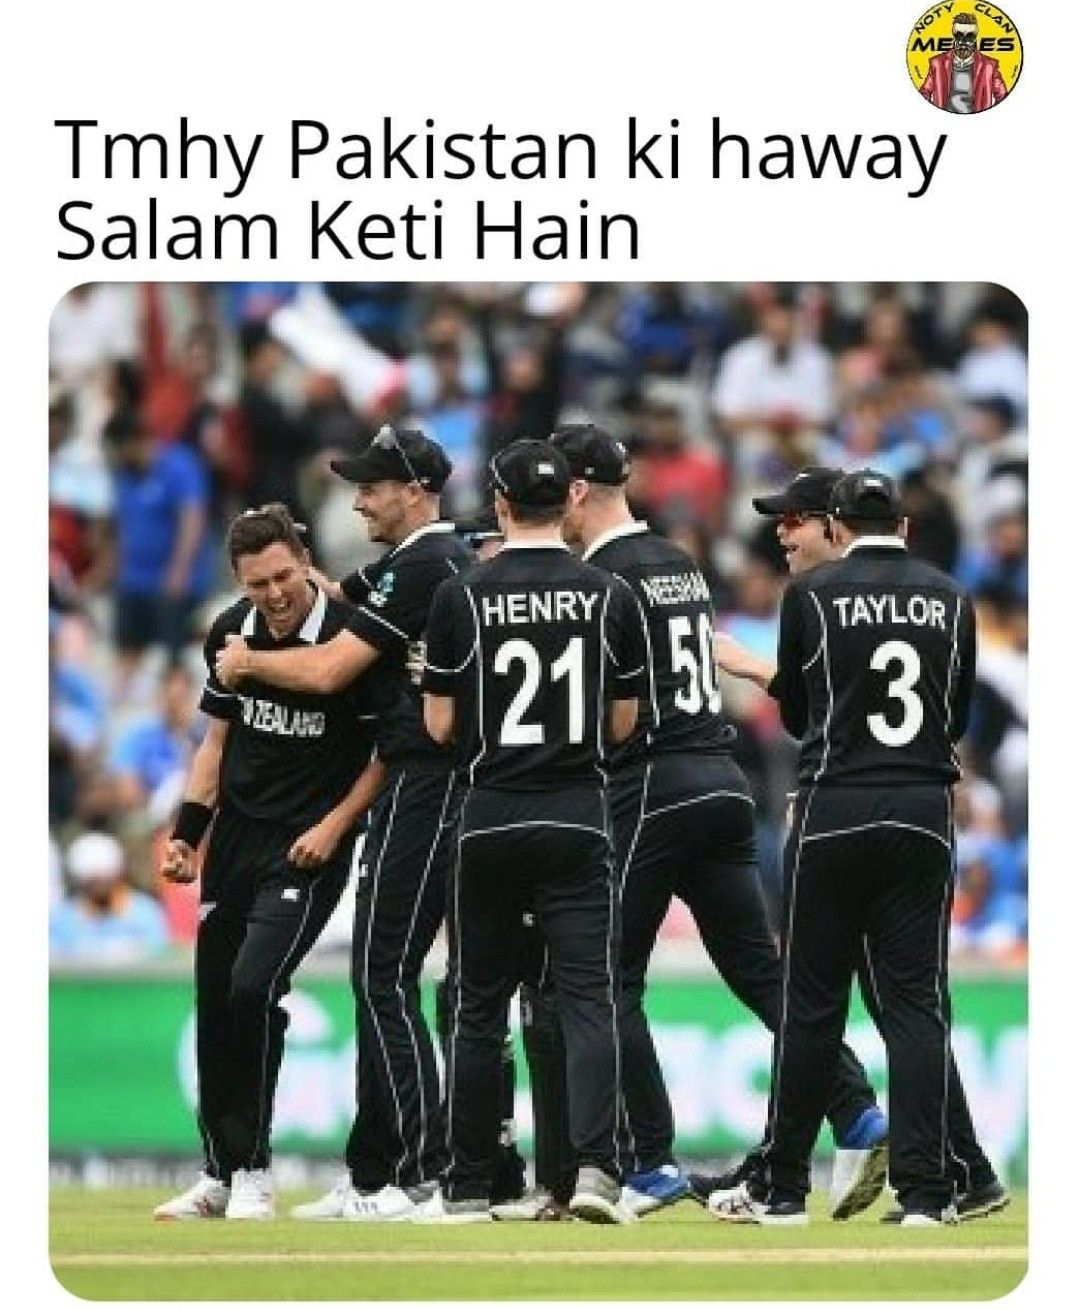 Pakistan Team Funny Images : pakistan, funny, images, Bleed, Green💚✌️❤️, Quotes, Novels,, Cricket, Quotes,, Funny, Memes